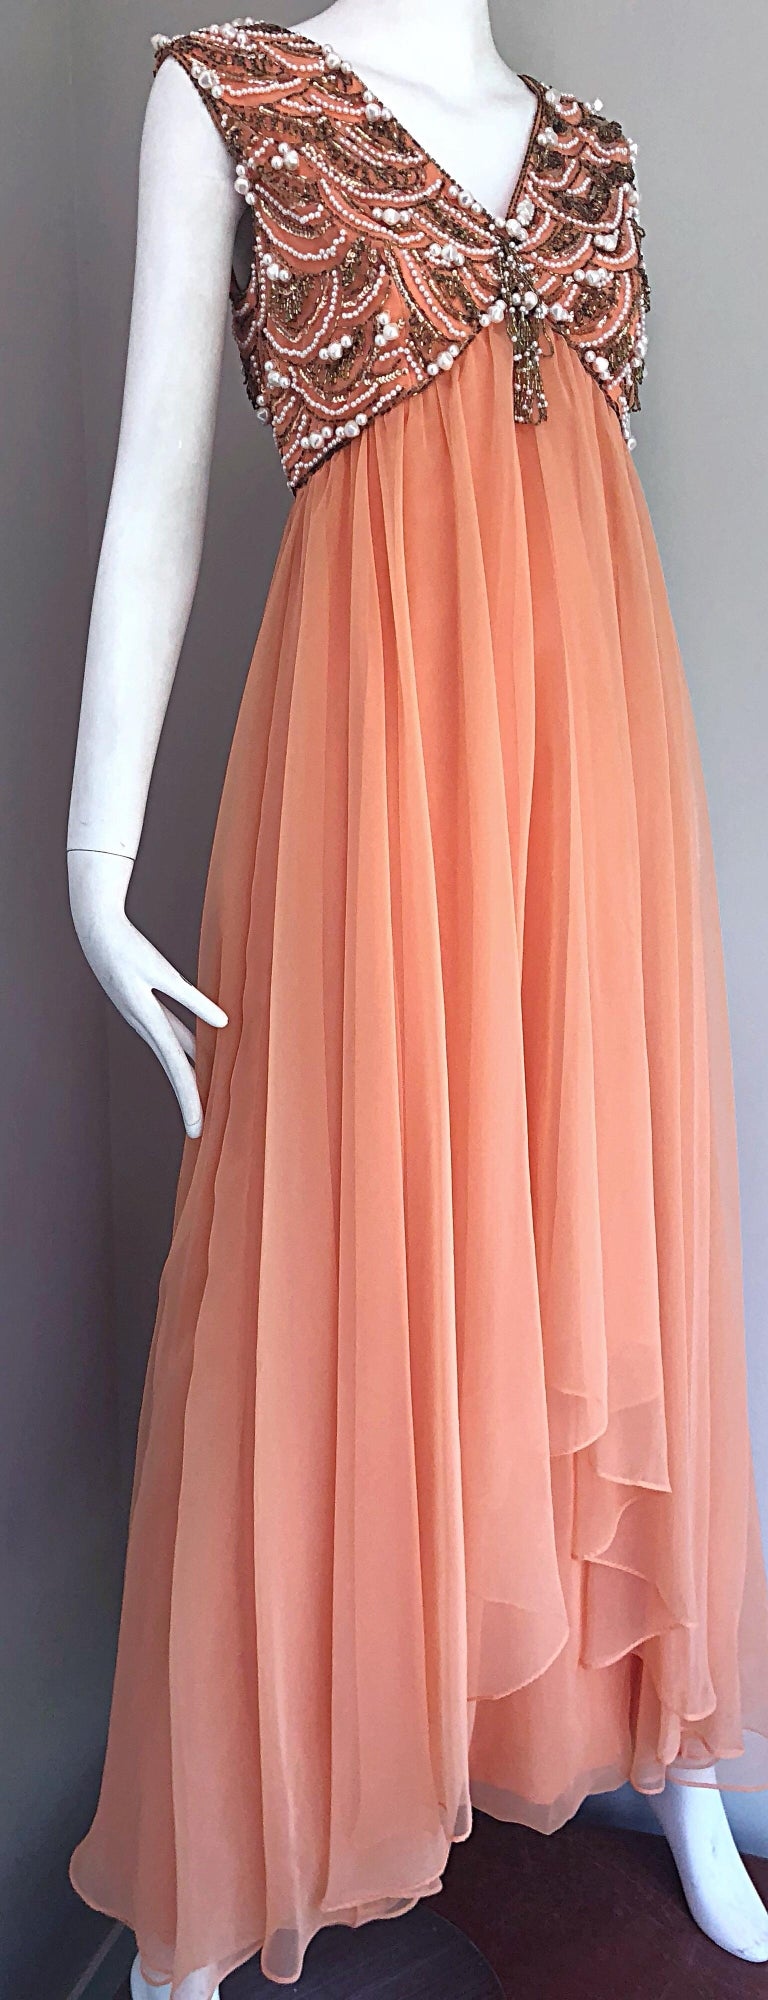 1960s Isabell Gerhart Sherbet Coral Demi Couture Beaded Chiffon 60s Gown Dress For Sale 1